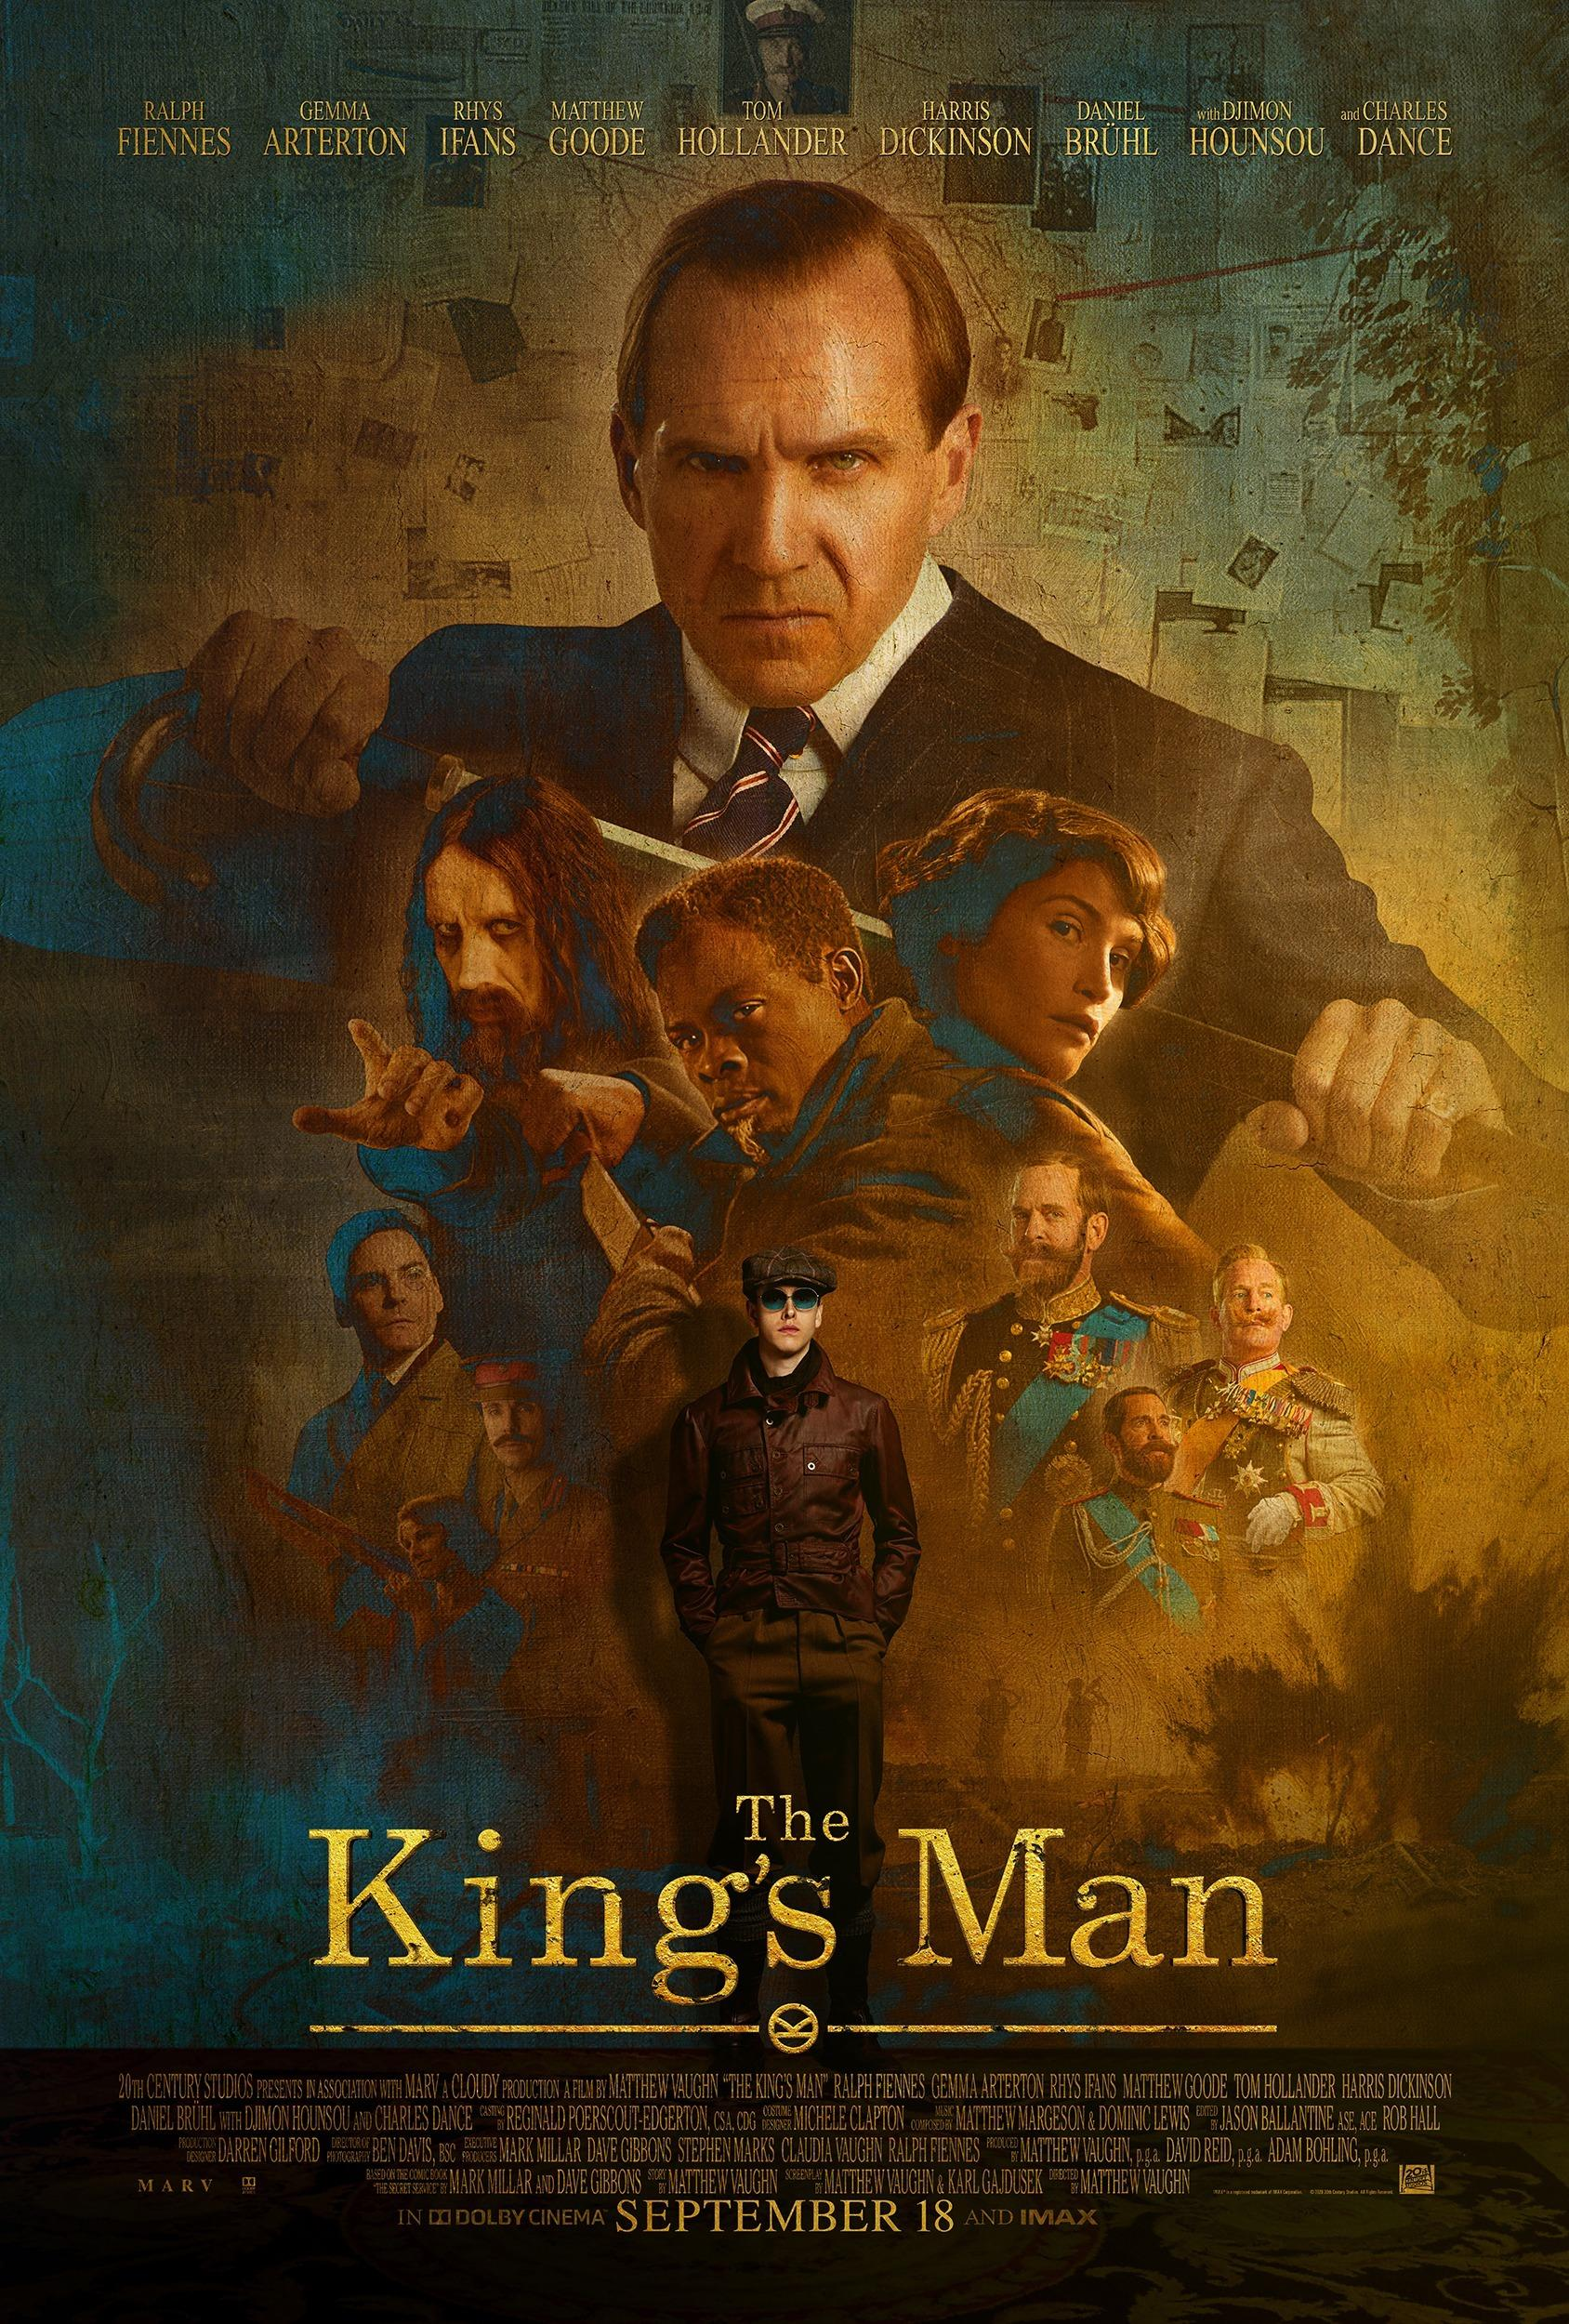 A new poster for The King's Man. (20th Century Studios)